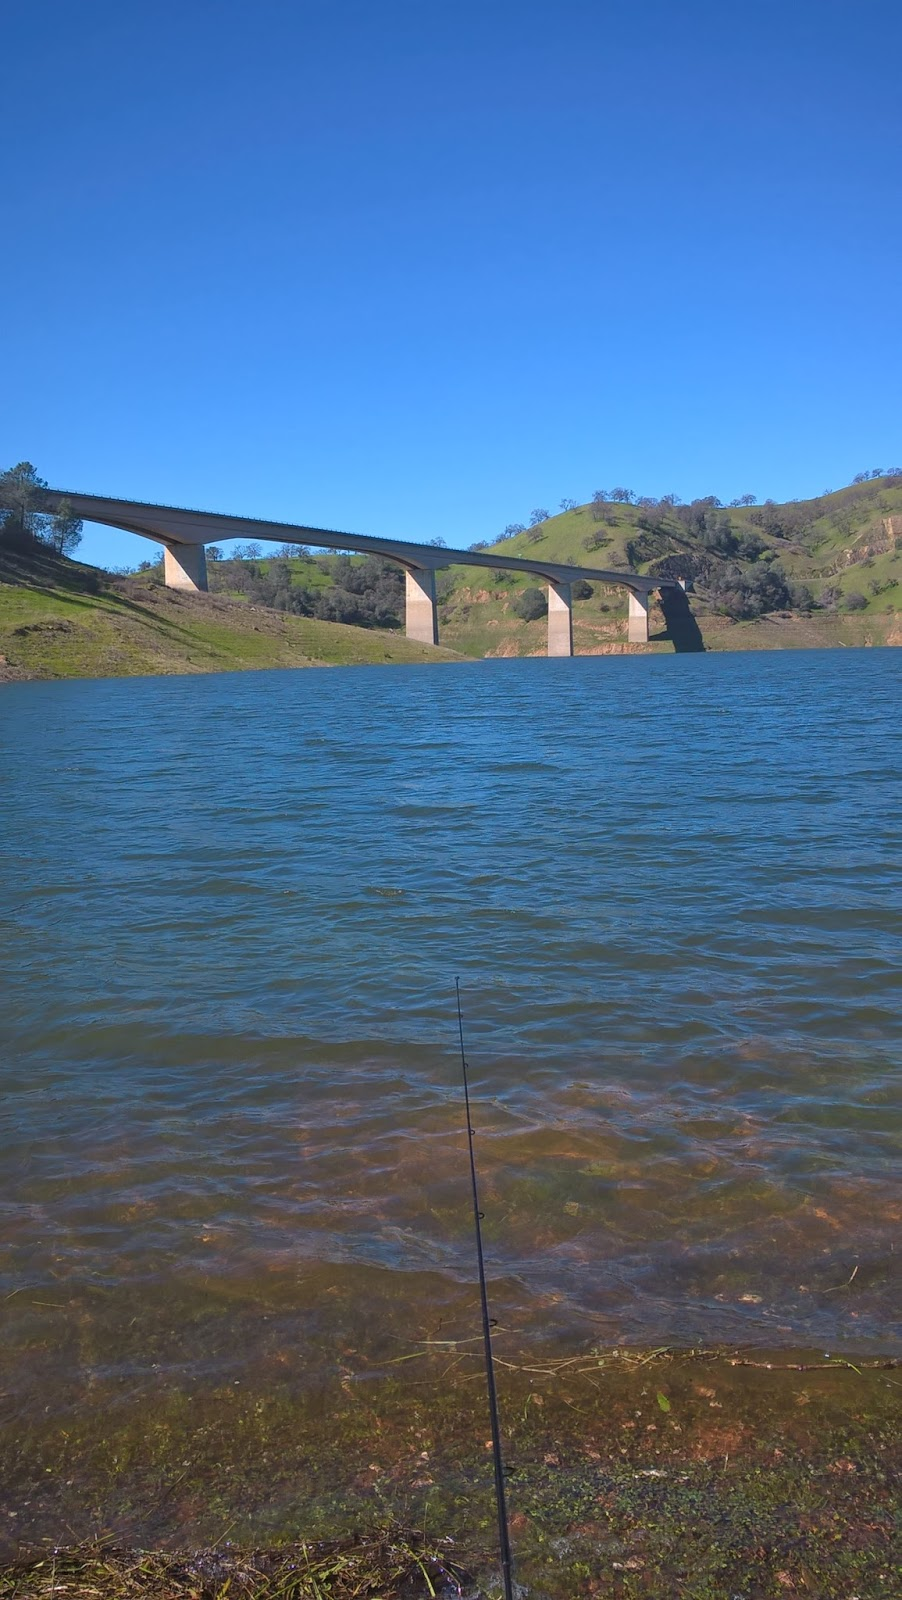 Northern california trout fishing was so exciting i for Mokelumne river fishing